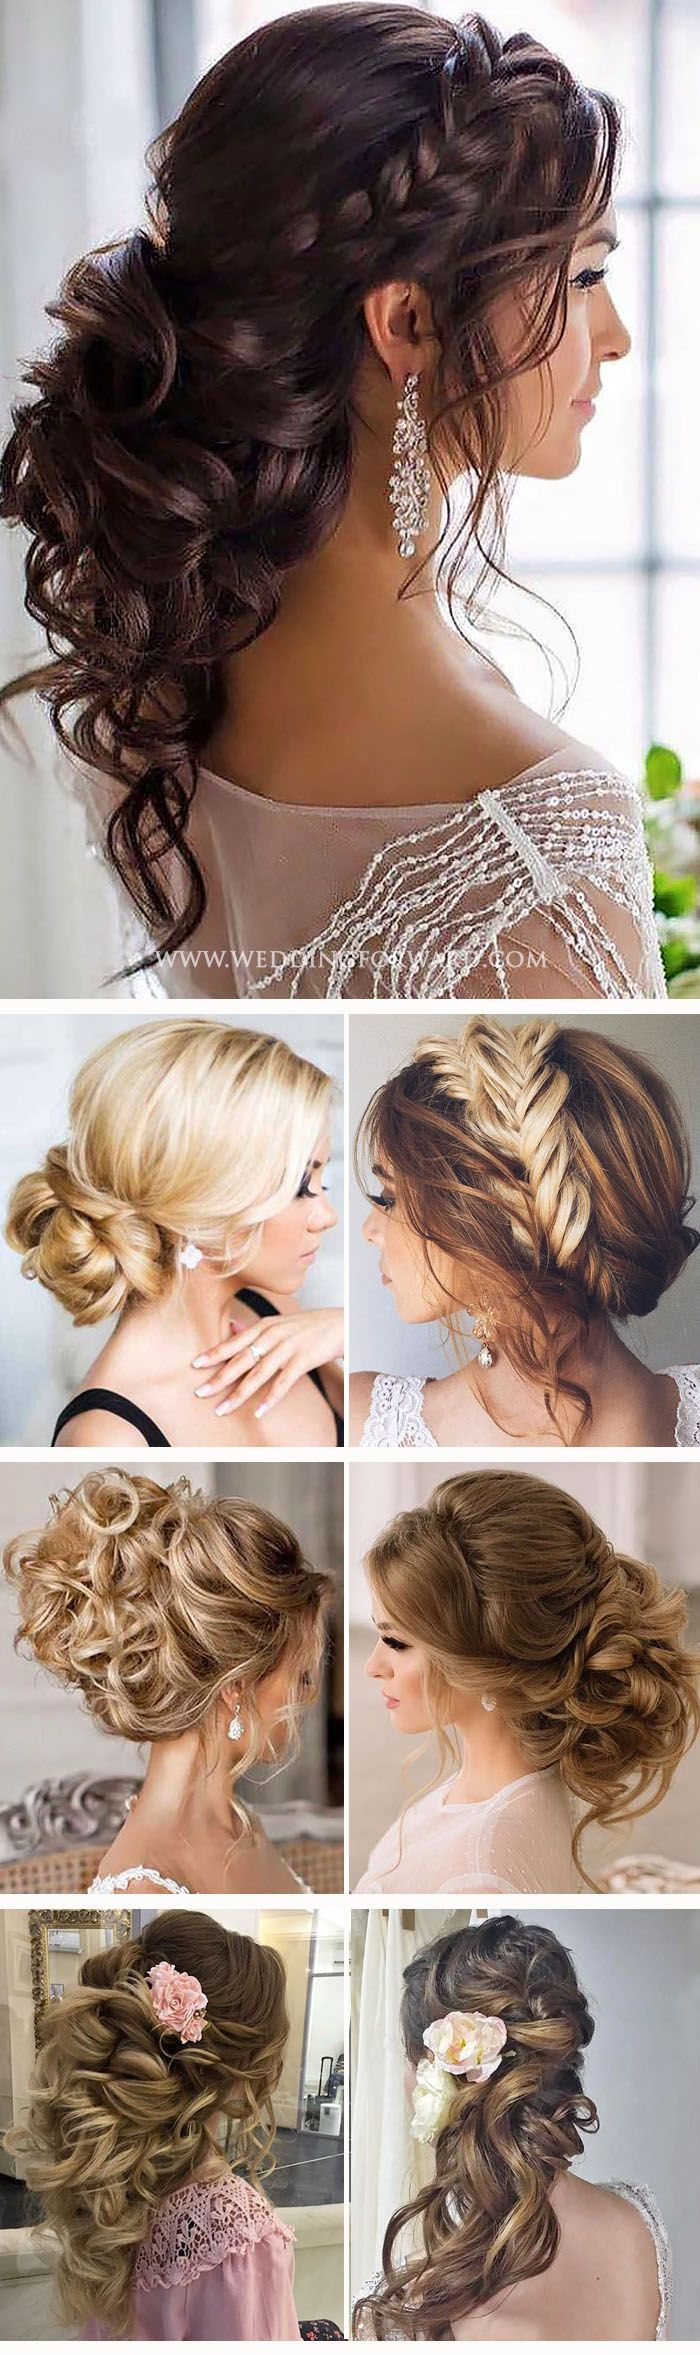 best images about hair on pinterest dance hairstyles